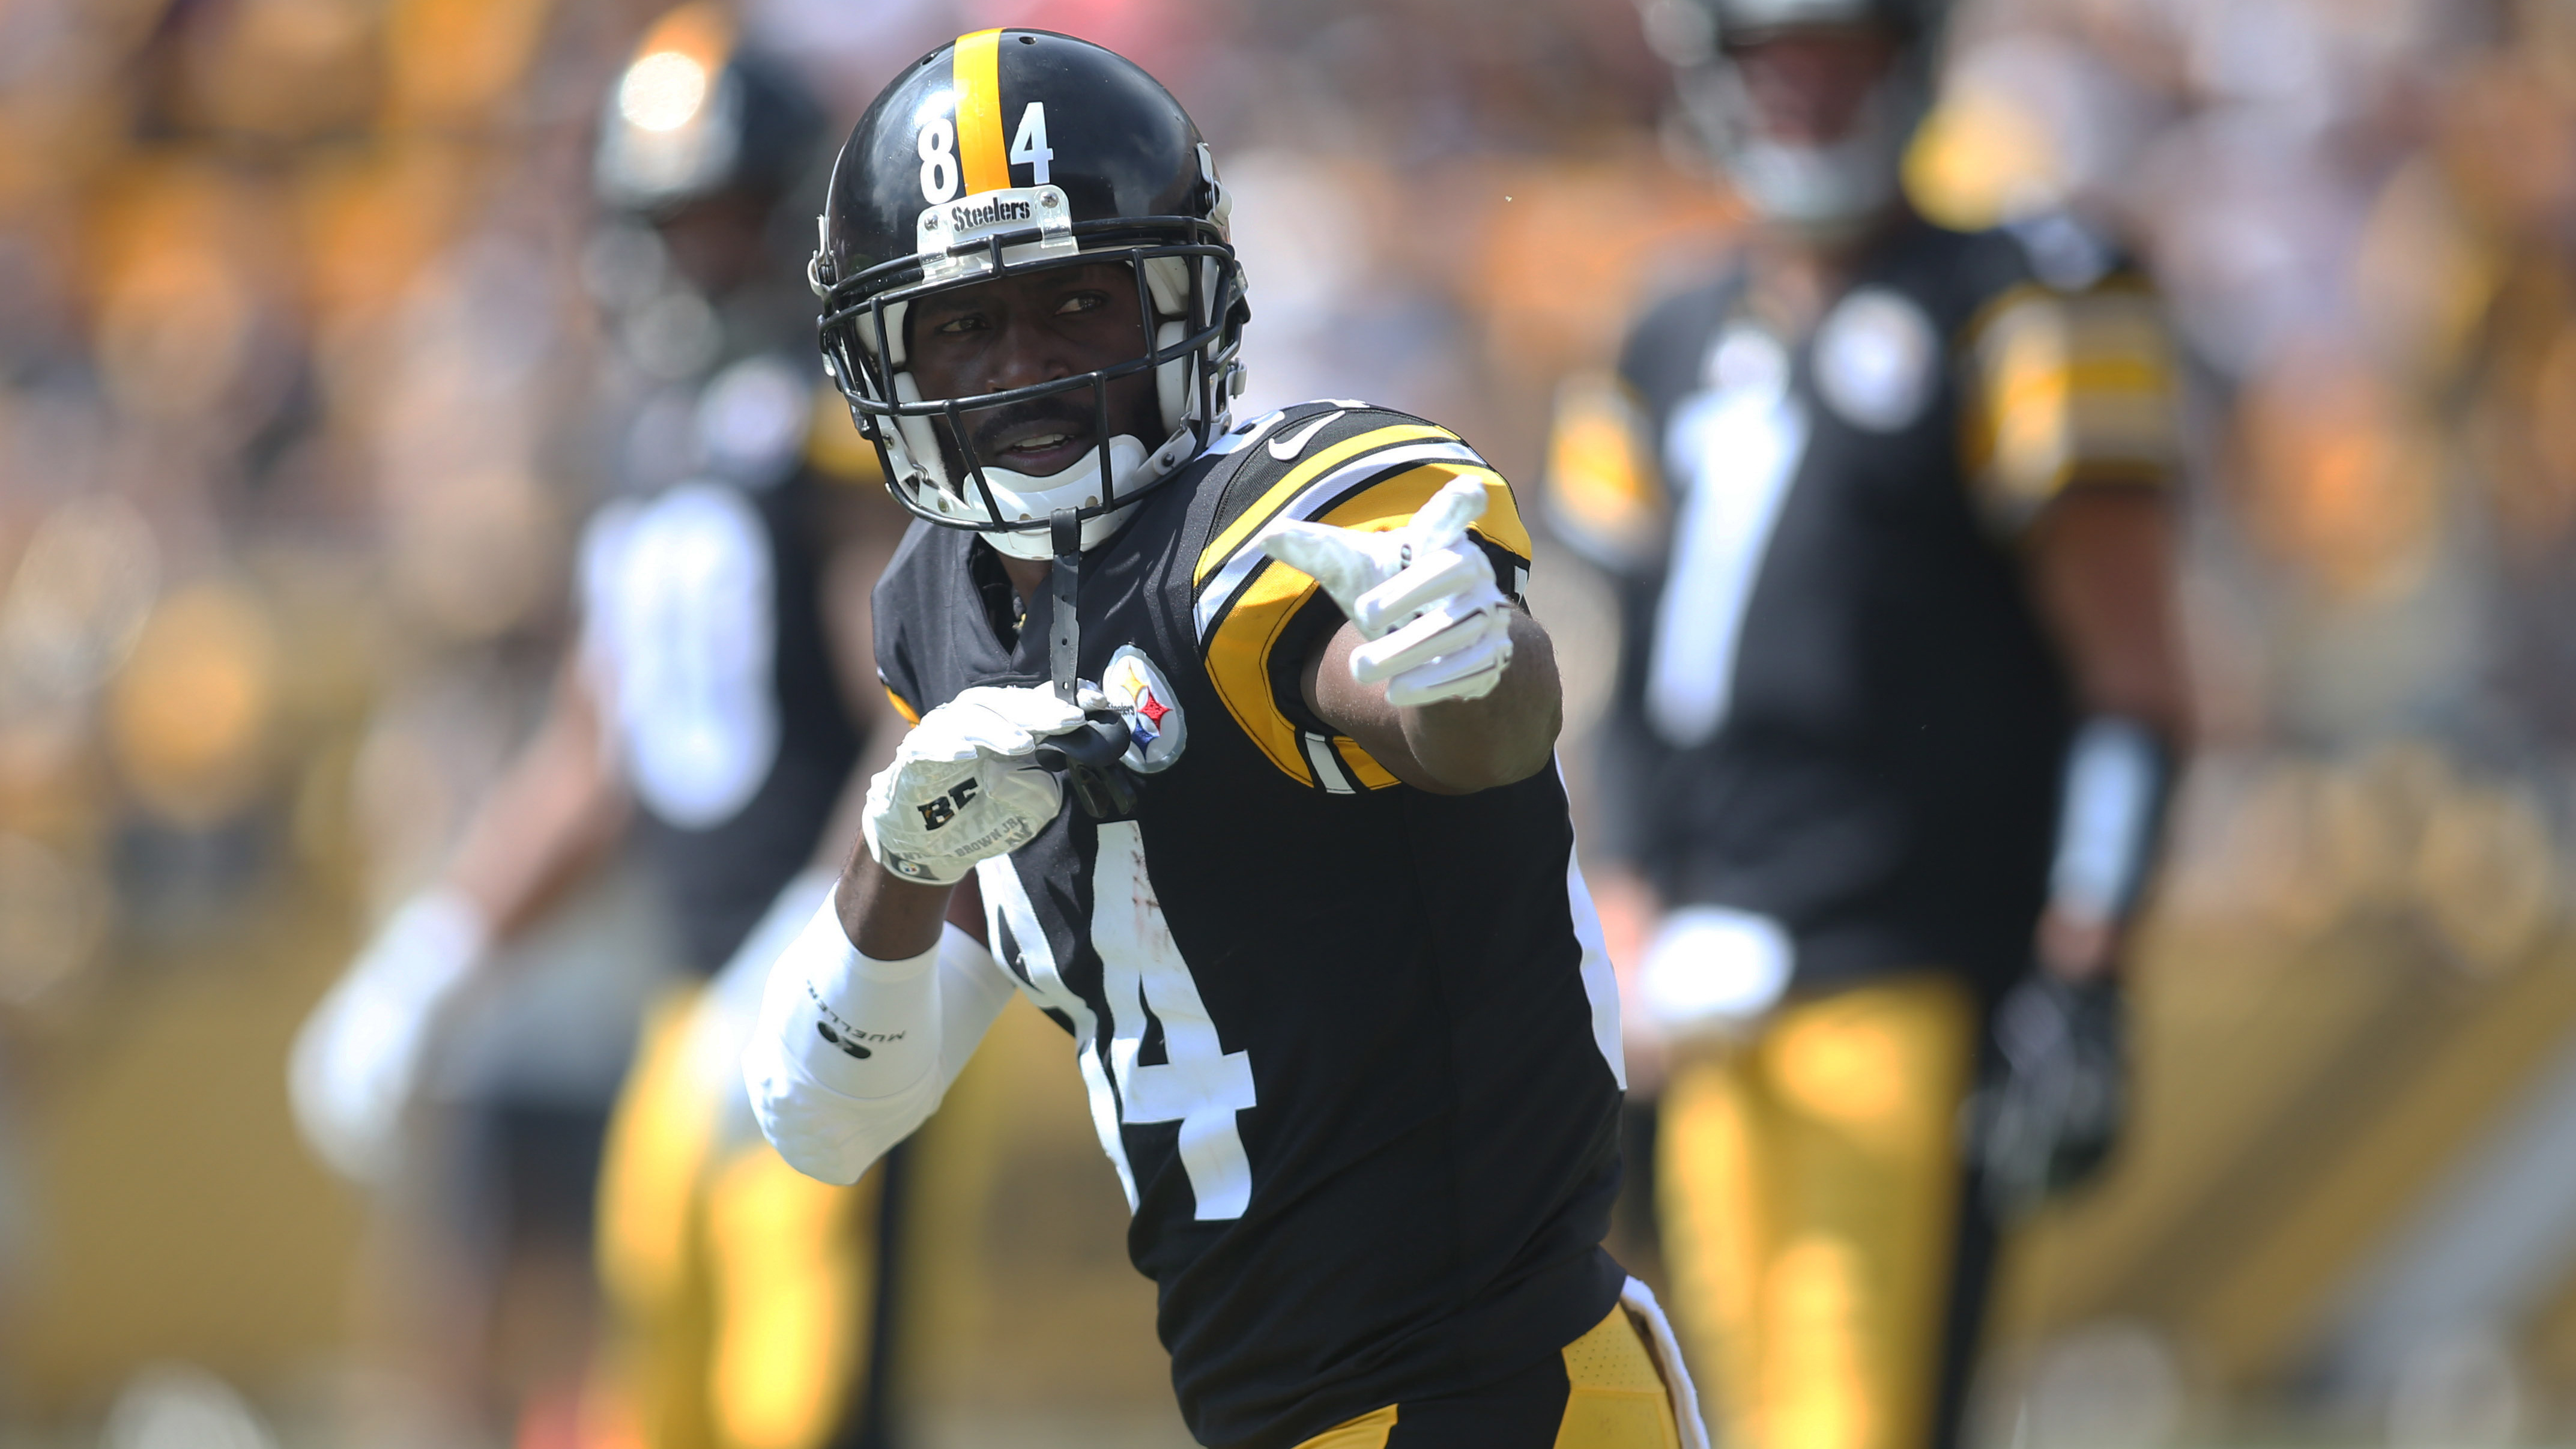 Freedman: Antonio Brown Is Falling Off a Cliff and No One